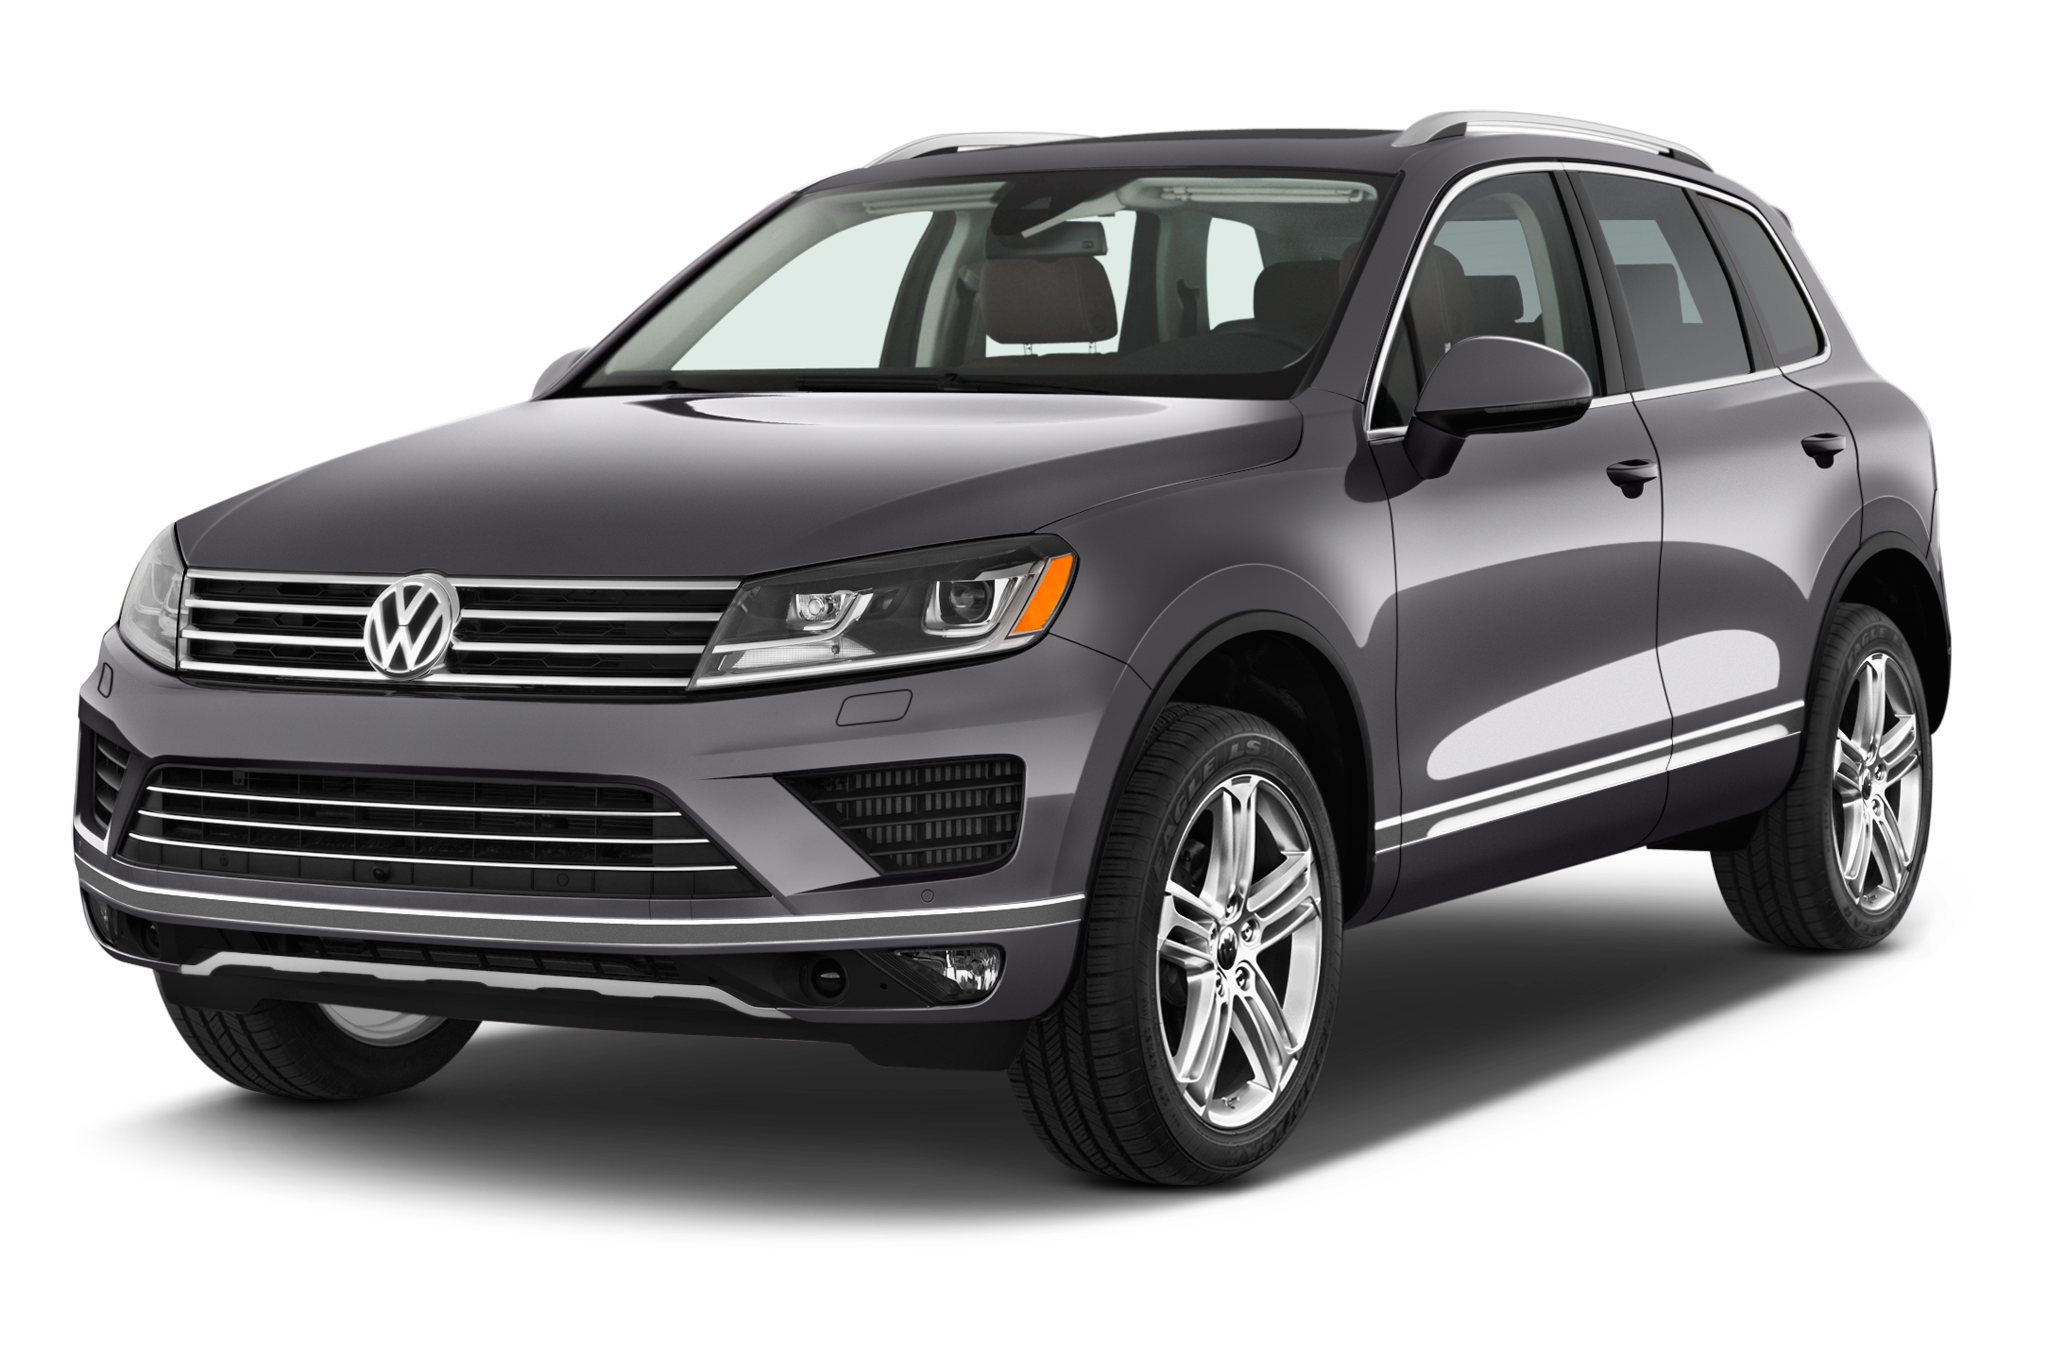 Volkswagen Cars - International Car Price & Overview